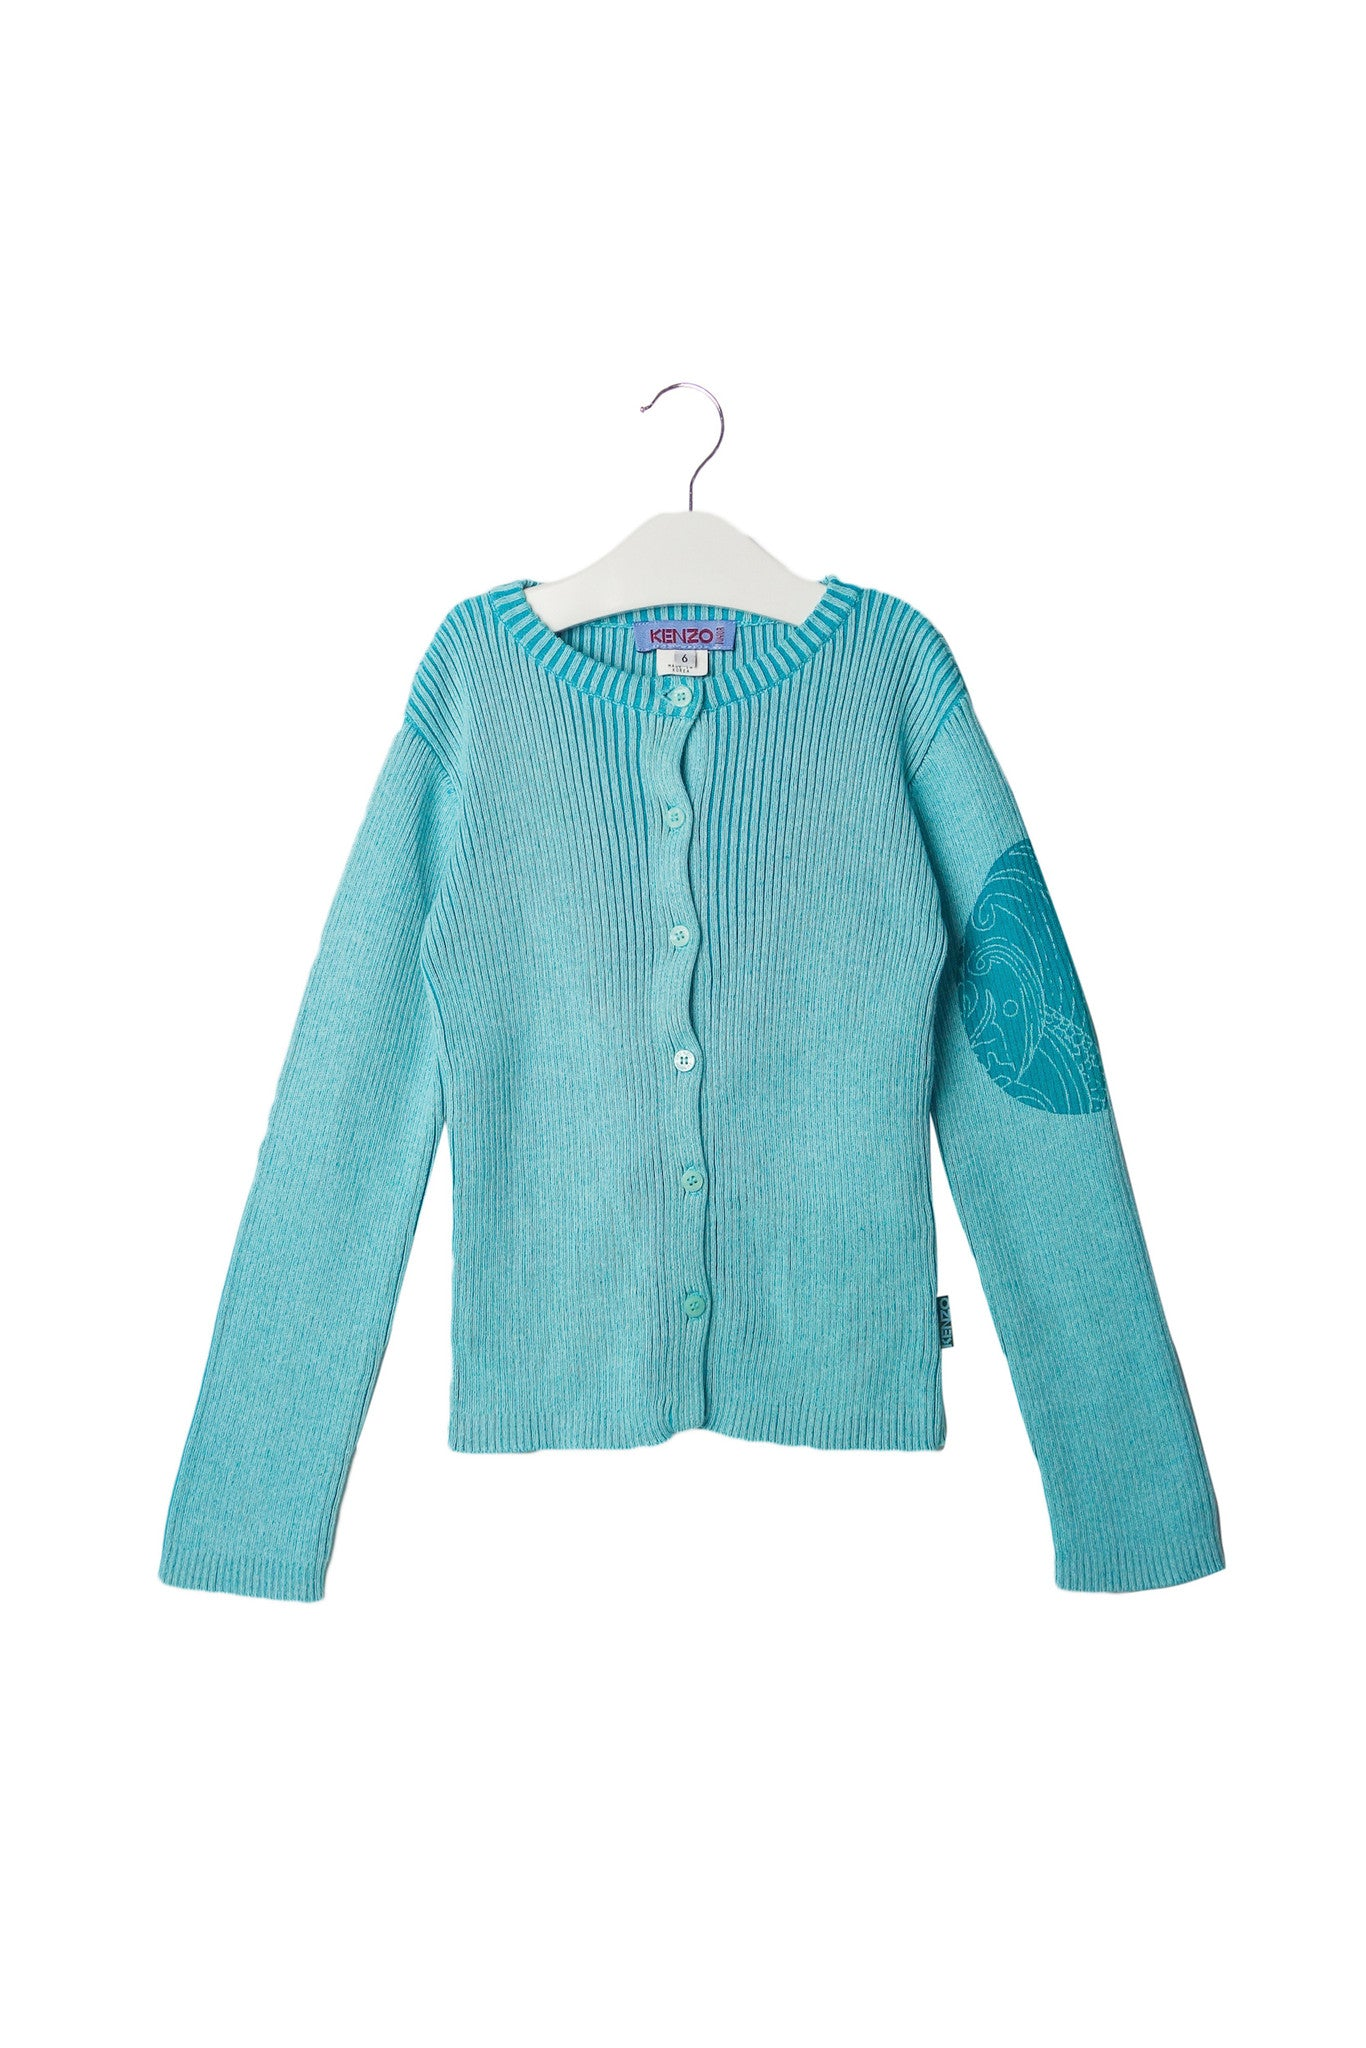 10003189 Kenzo Kids~Cardigan 6T at Retykle